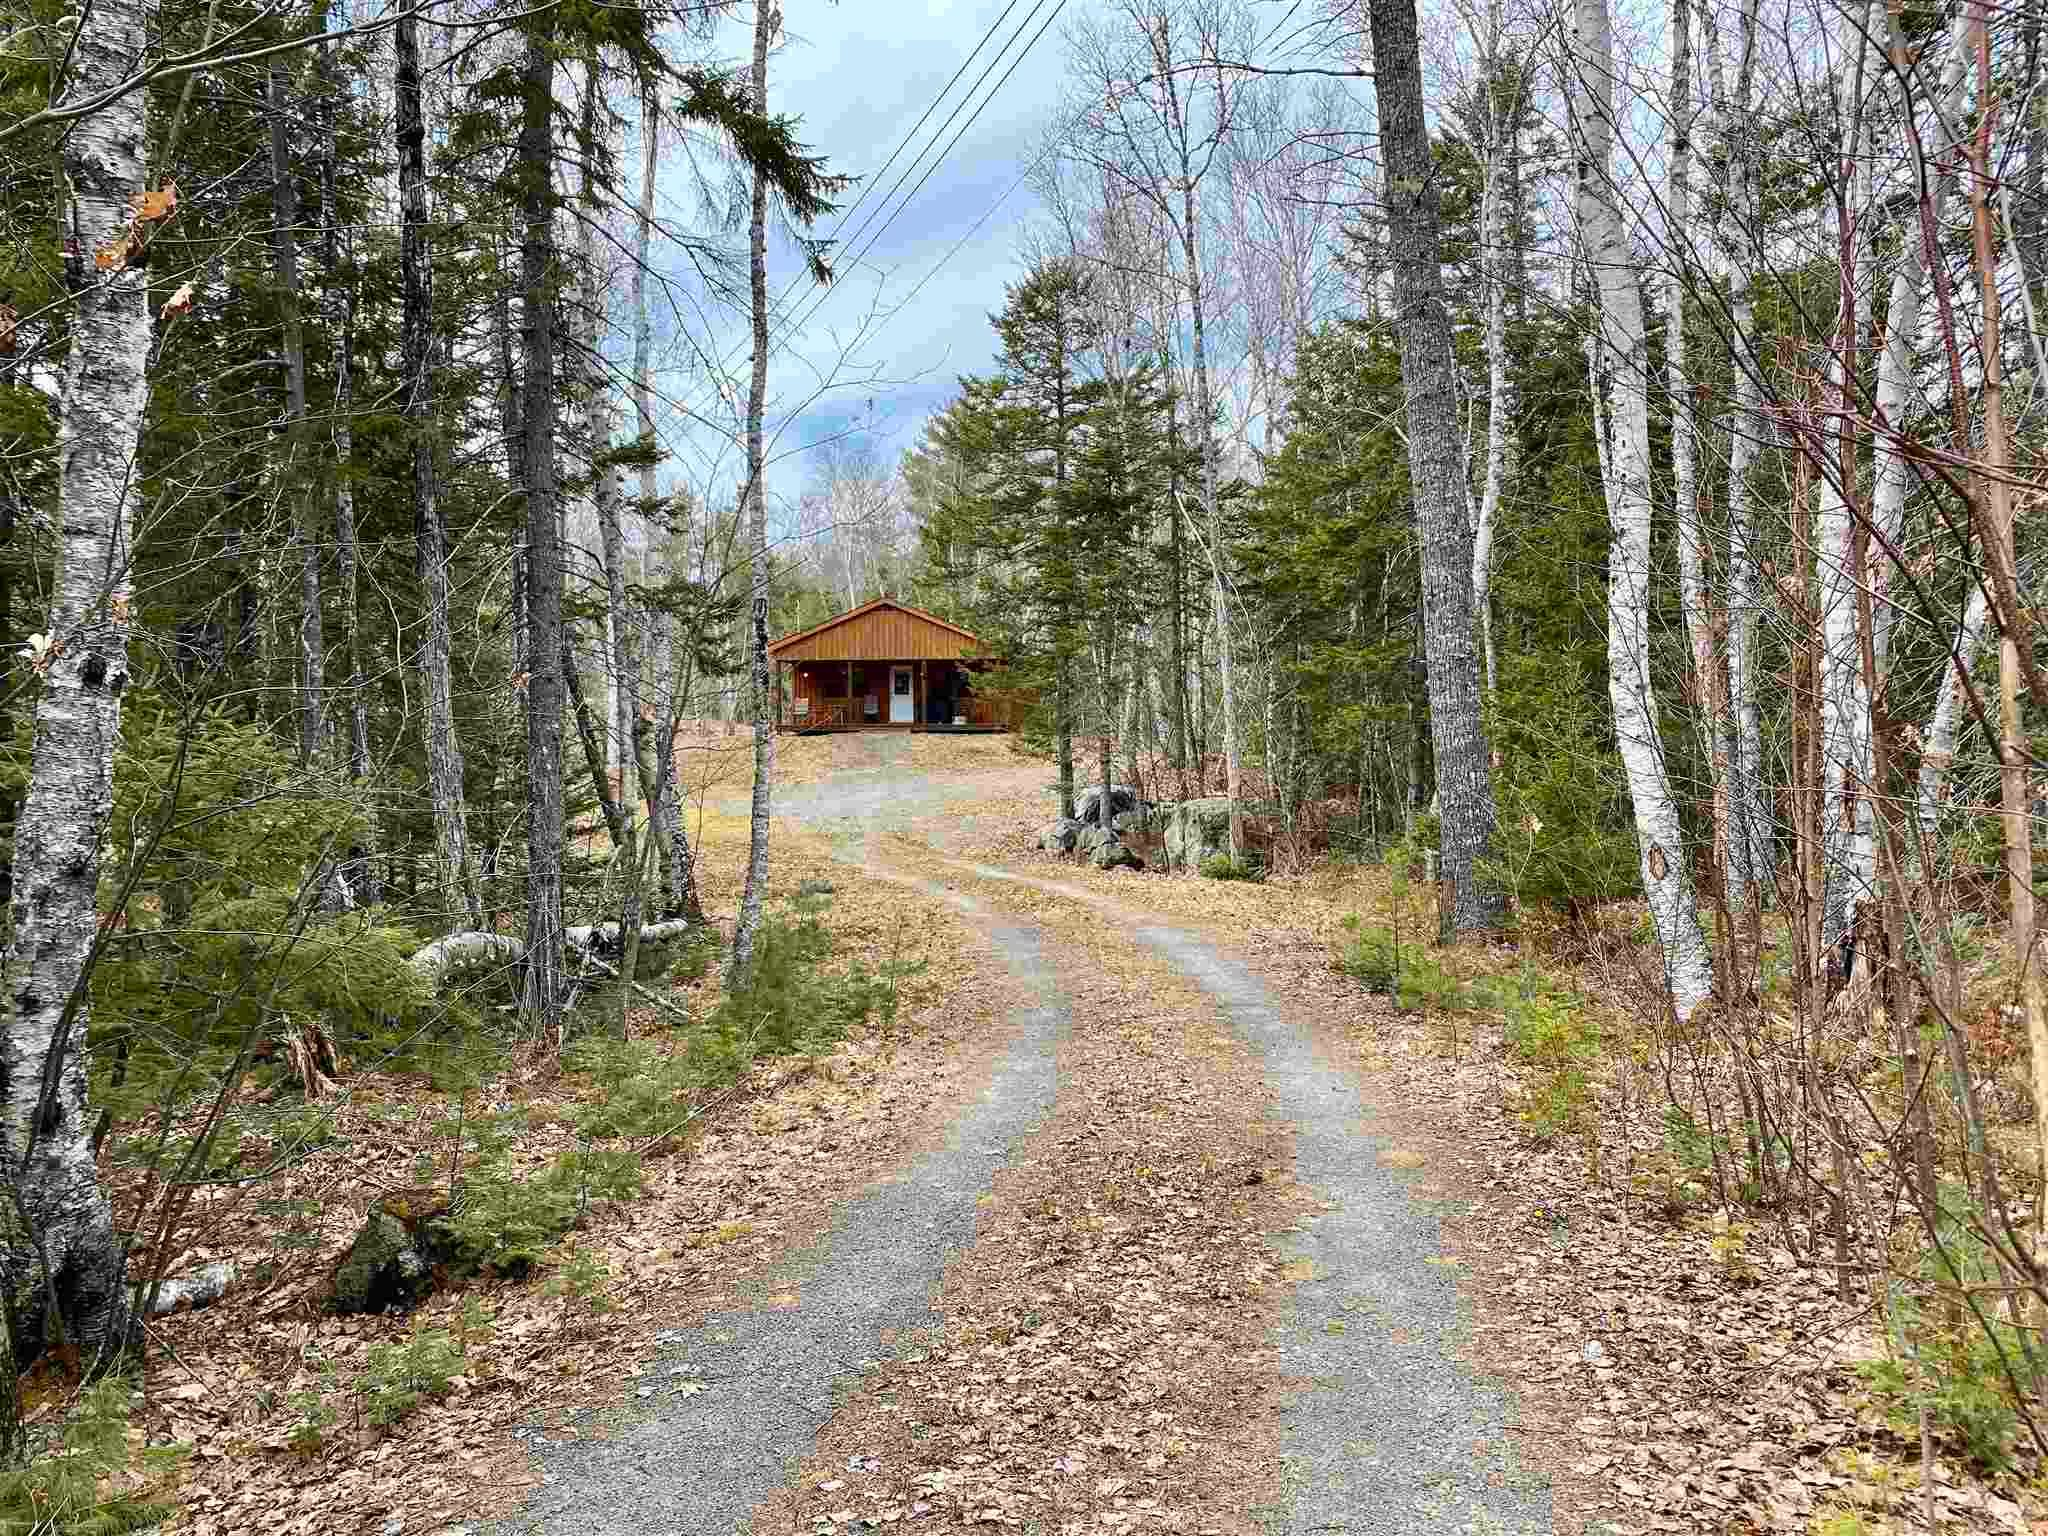 Main Photo: 158 Canyon Point Road in Vaughan: 403-Hants County Residential for sale (Annapolis Valley)  : MLS®# 202109867